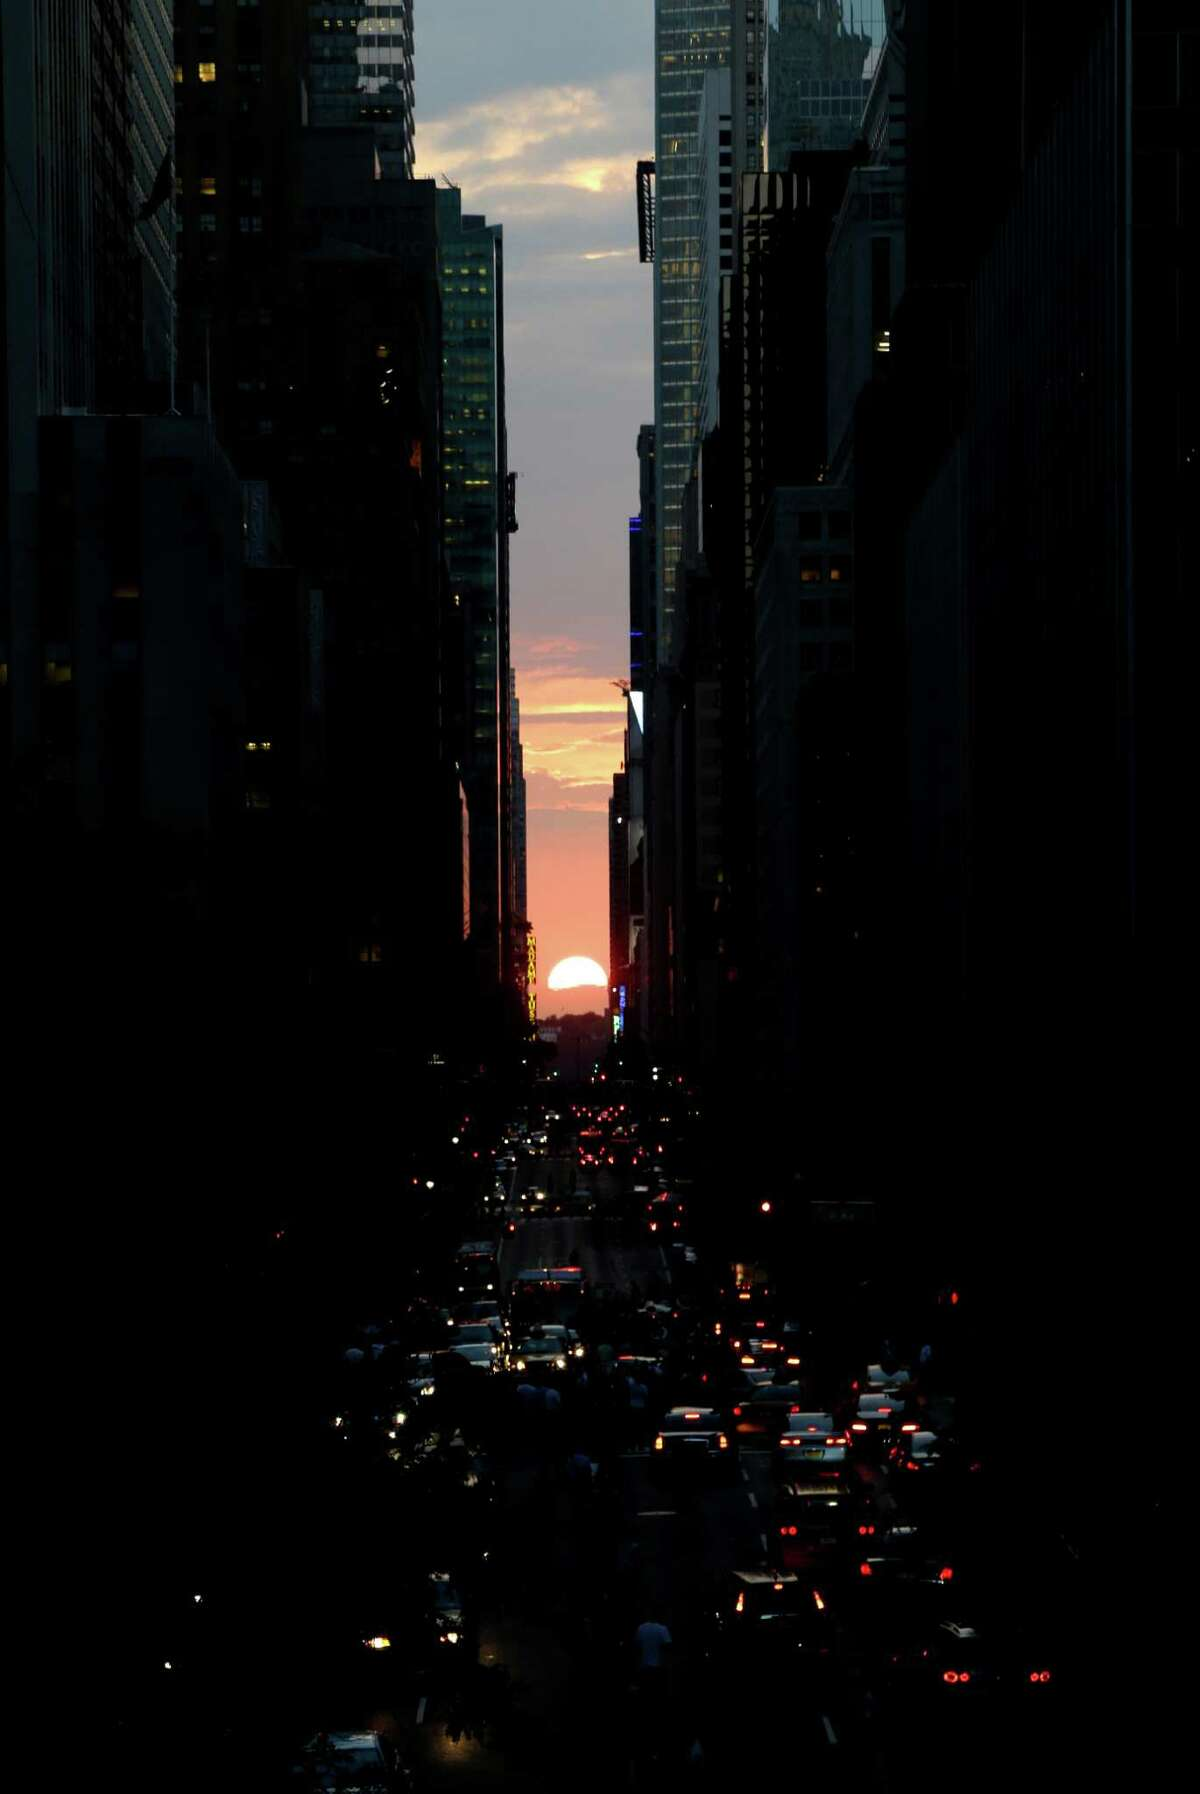 The sun sets through the middle of buildings on 42nd Street in New York's Manhattan borough, during a phenomenon known as Manhattanhenge, Wednesday, July 11, 2012. Manhattanhenge, sometimes referred to as the Manhattan Solstice, happens when the setting sun aligns with the east-to-west streets of the main street grid. The term references Stonehenge, at which the sun aligns with the stones on the solstices in England.